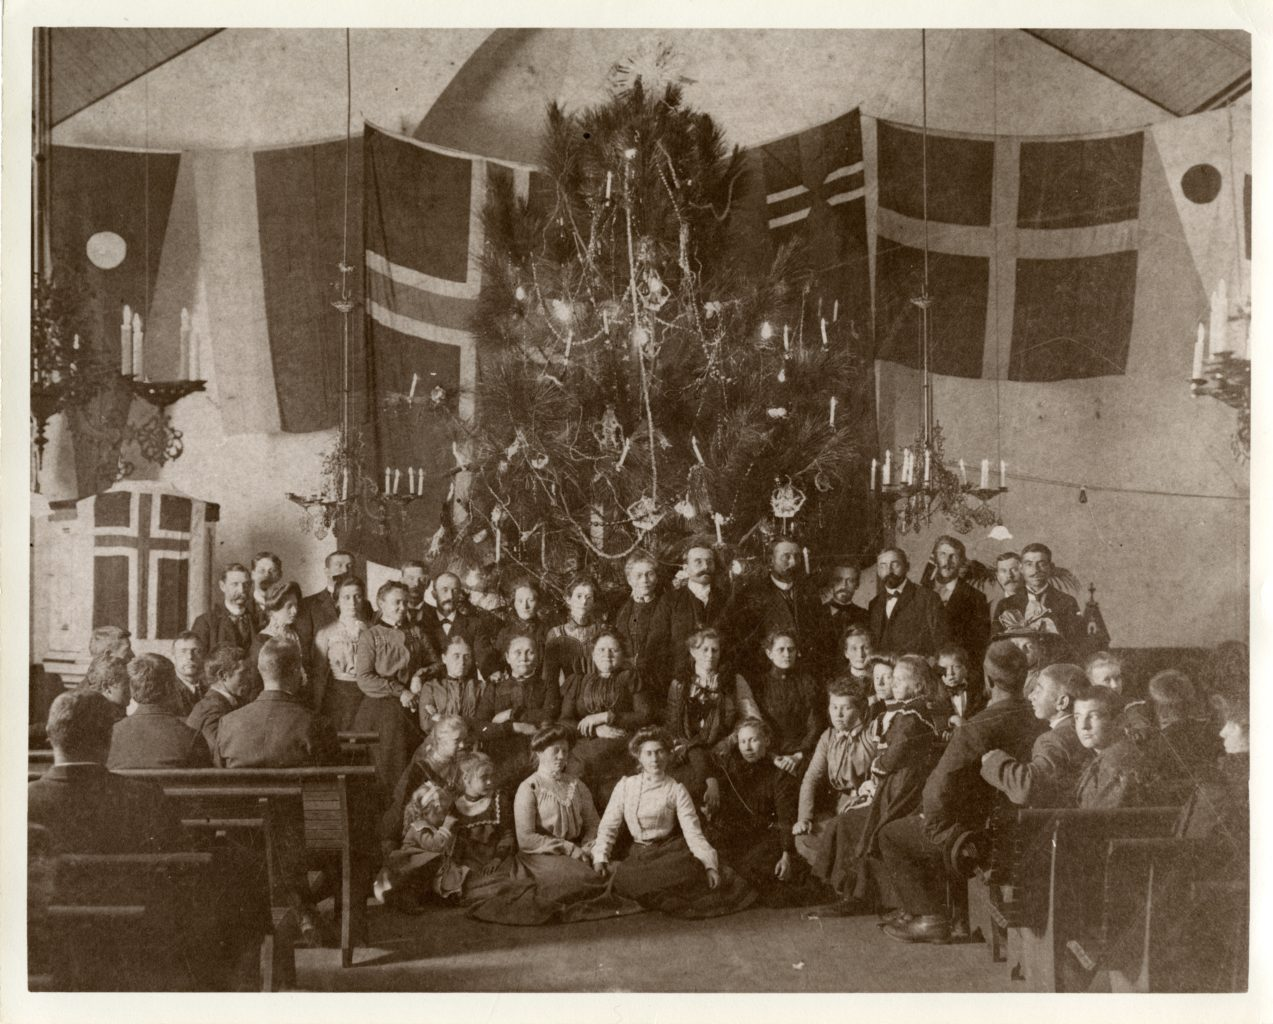 Large group photo of members of the church. Christmas tree decorated and Norwegian flag behind.